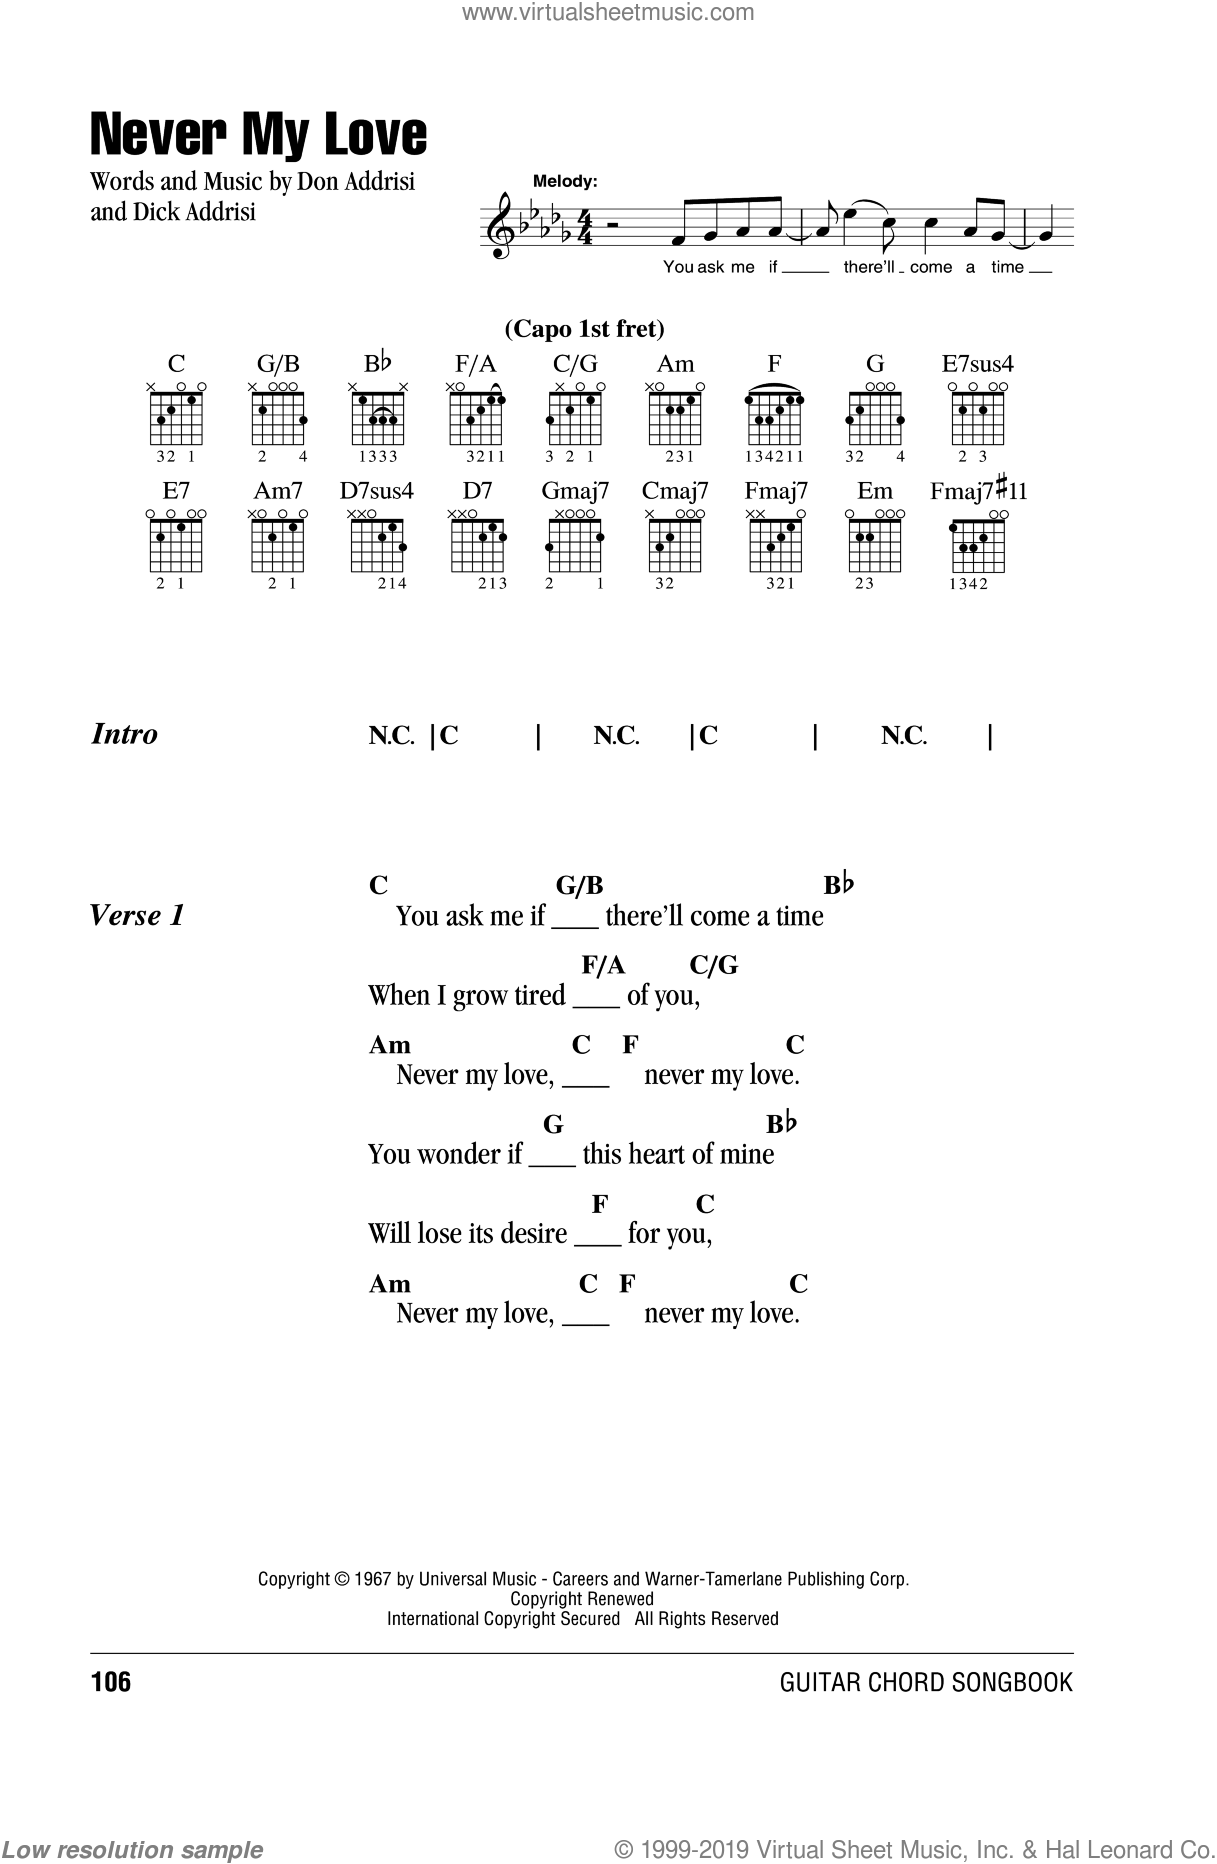 Never My Love sheet music for guitar (chords) by Don Addrisi, The Association, The Fifth Dimension and Dick Addrisi. Score Image Preview.